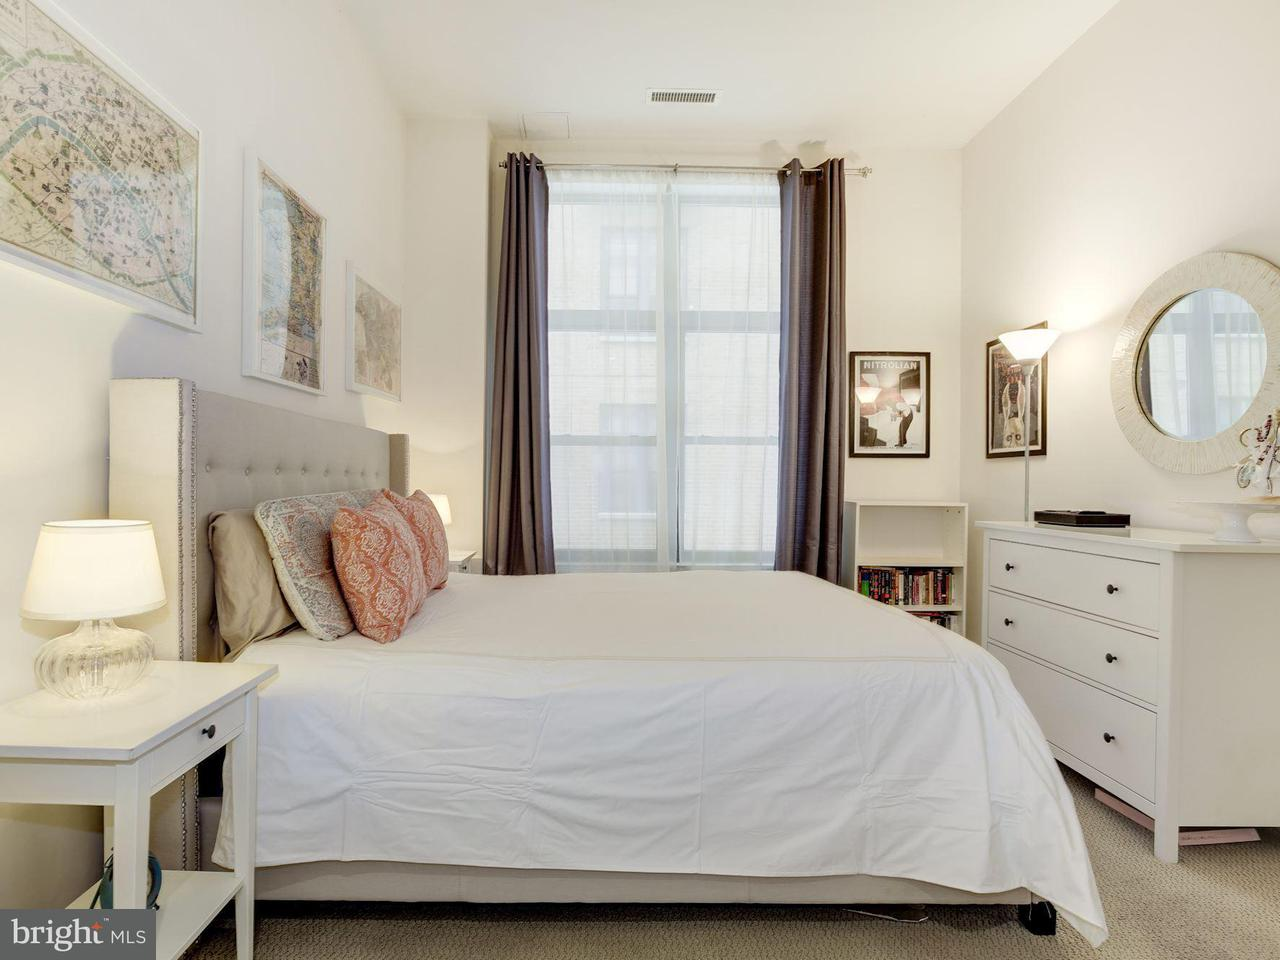 Additional photo for property listing at 2425 L St NW #217  Washington, District Of Columbia 20037 United States